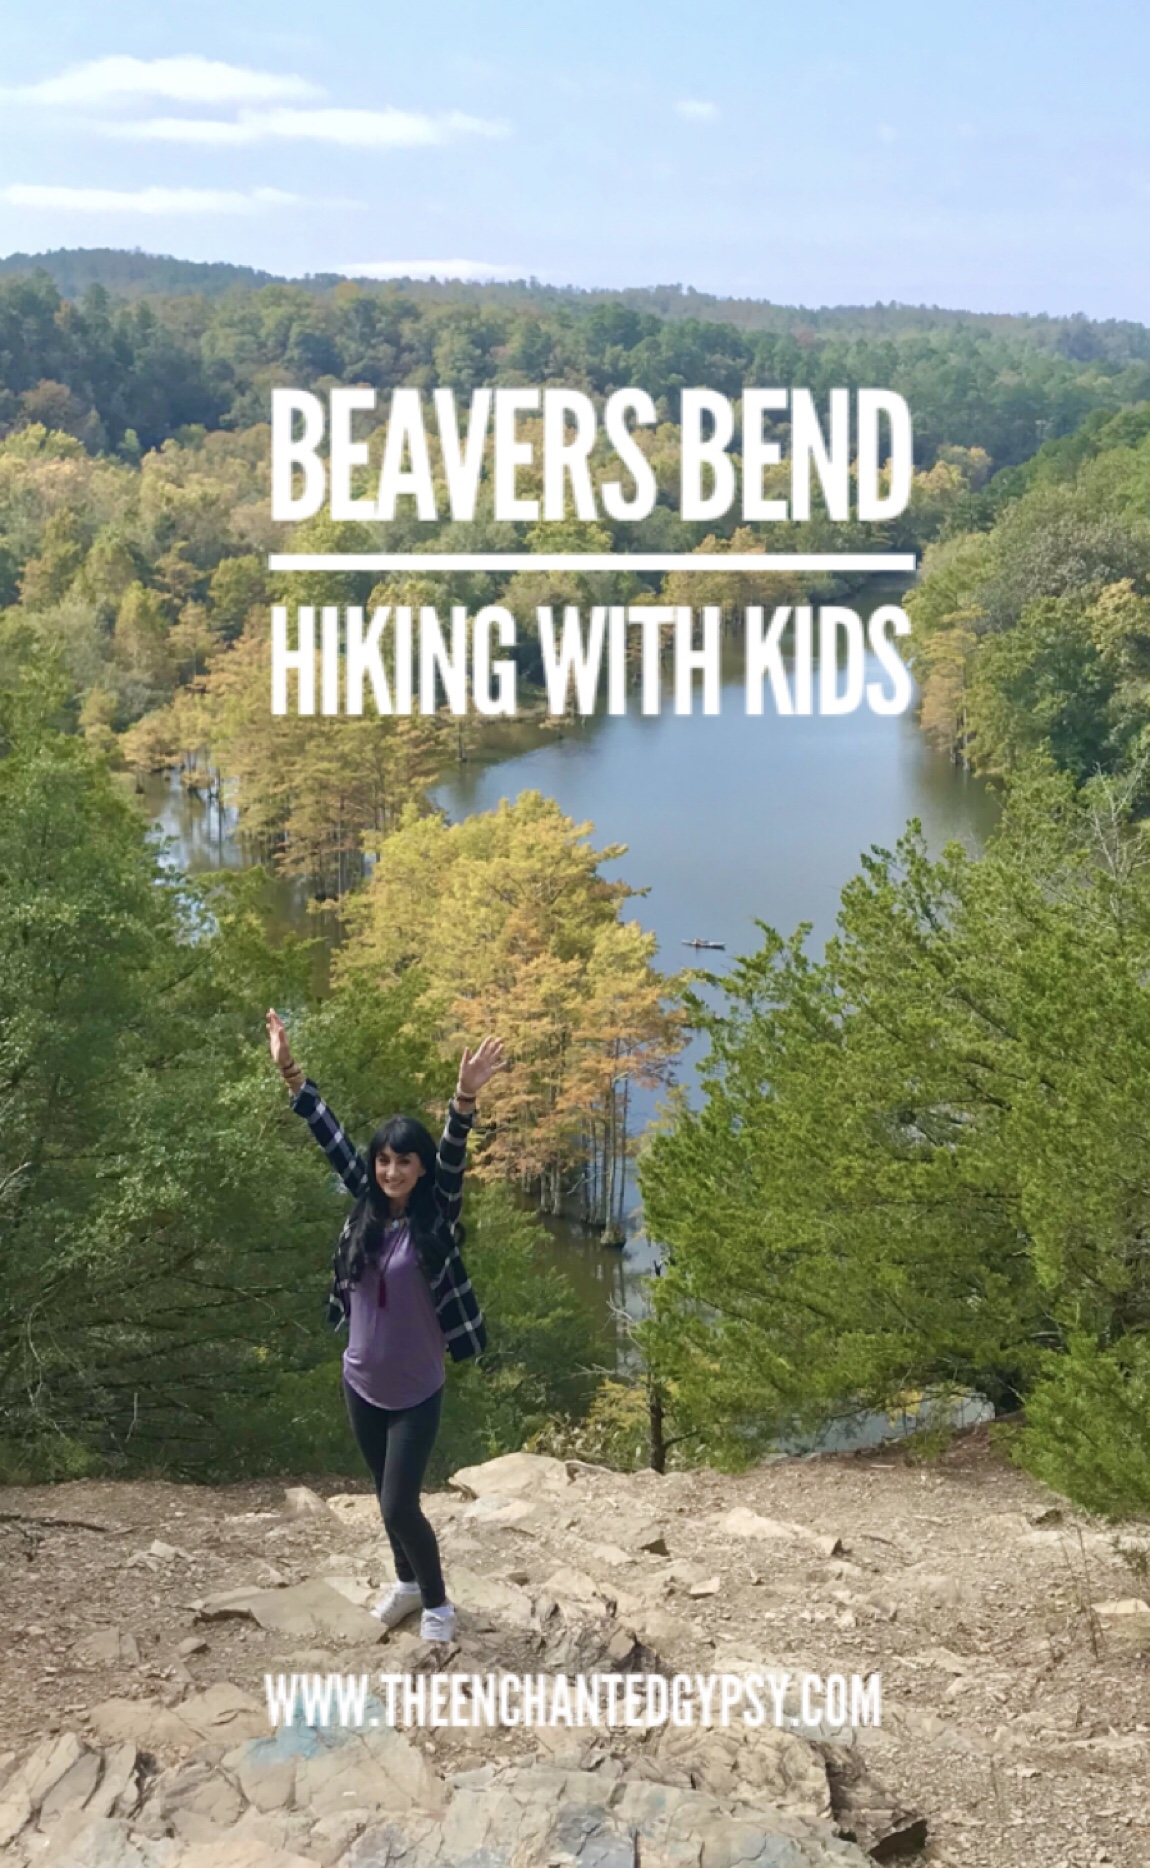 Beavers Bend hiking